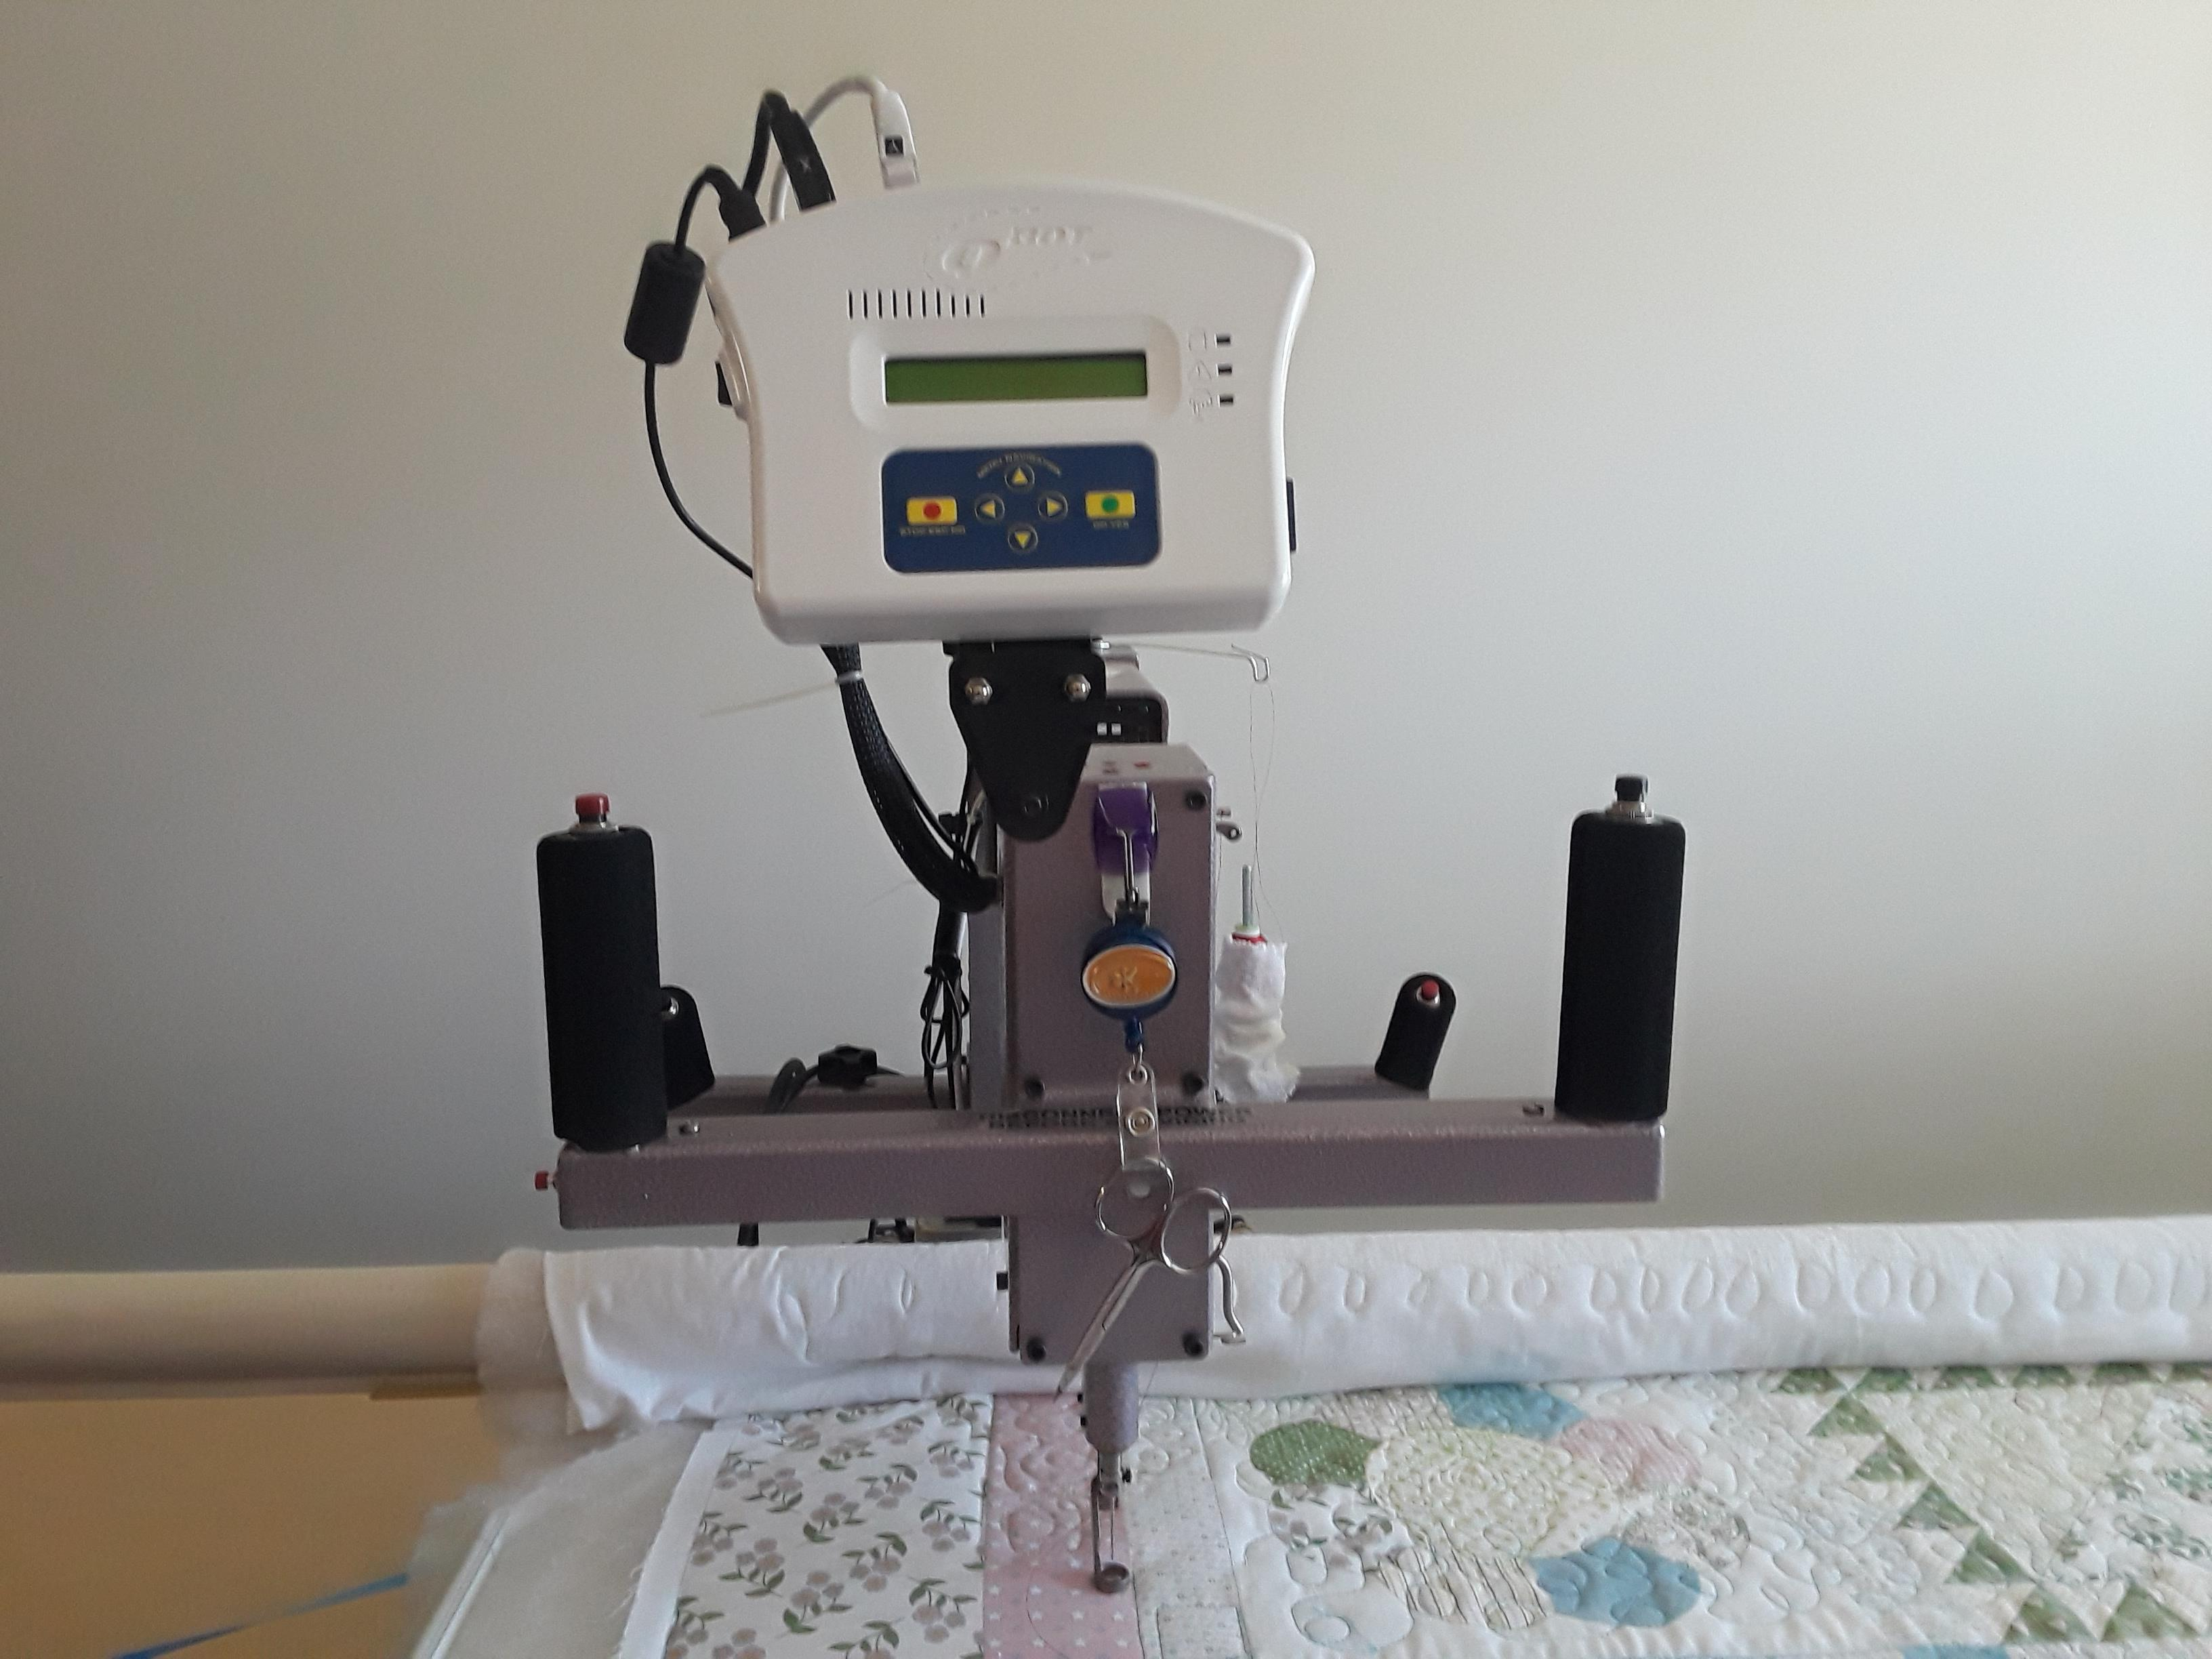 Nolting Fun Quilter, 10 foot table with QBot